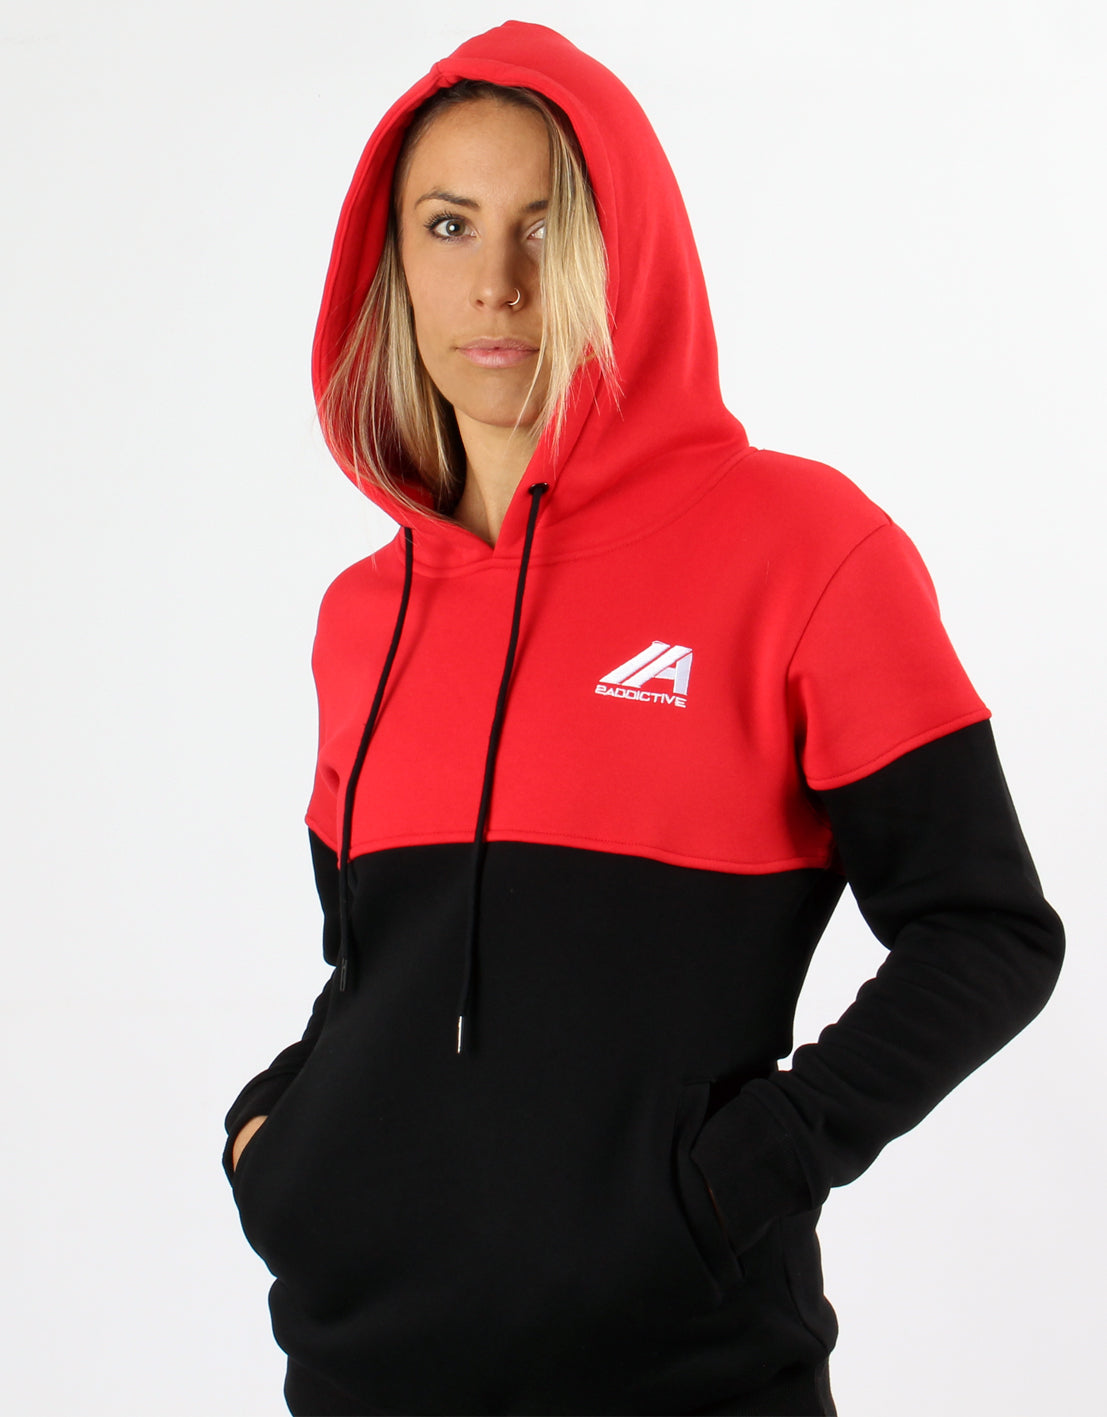 Women's Dual Hoodie - Red/Black - 2 Addictive